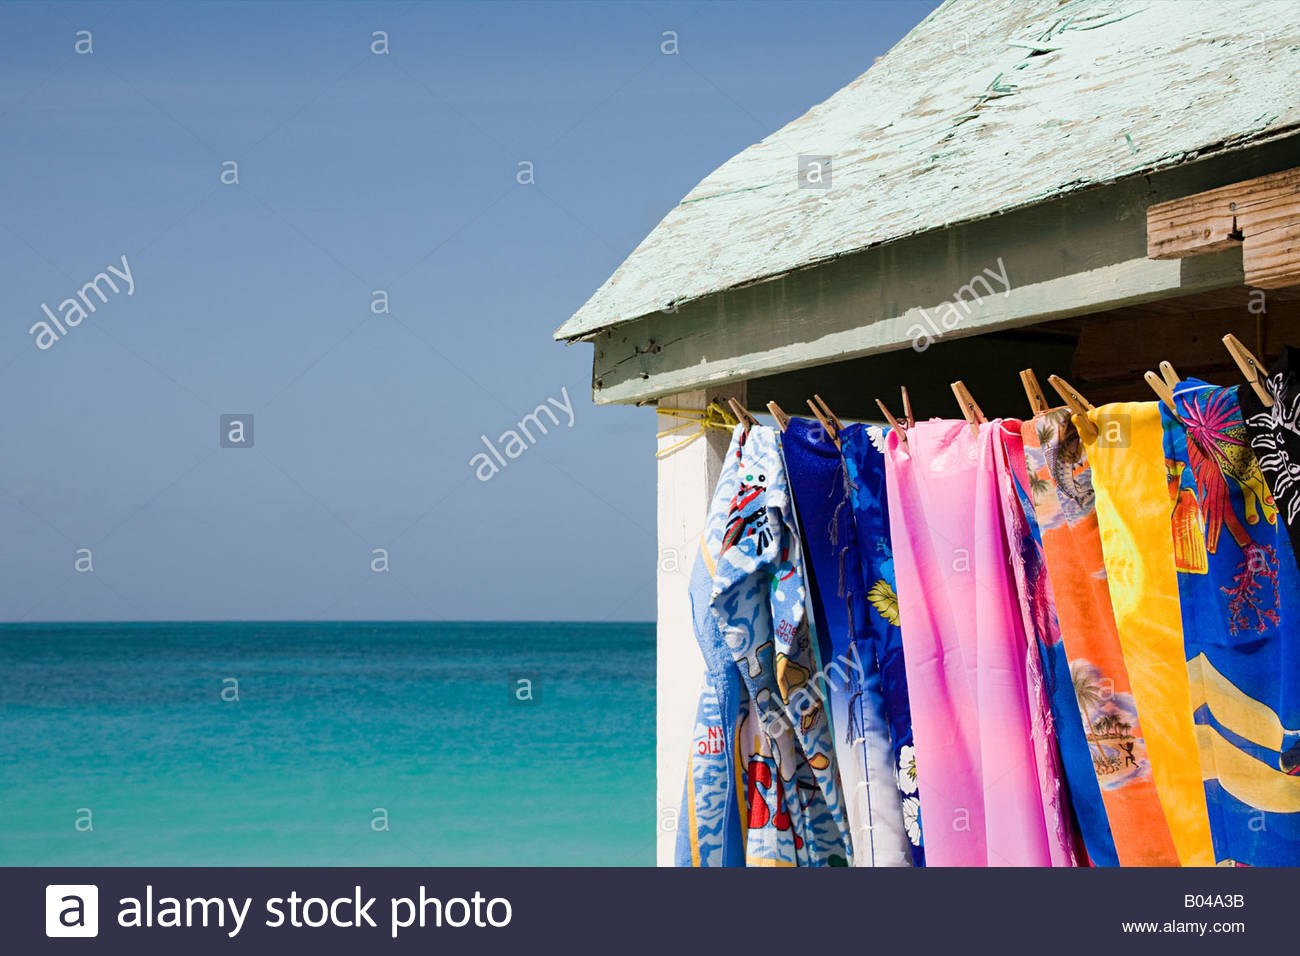 Towels dryng on a clothesline - Stock Image